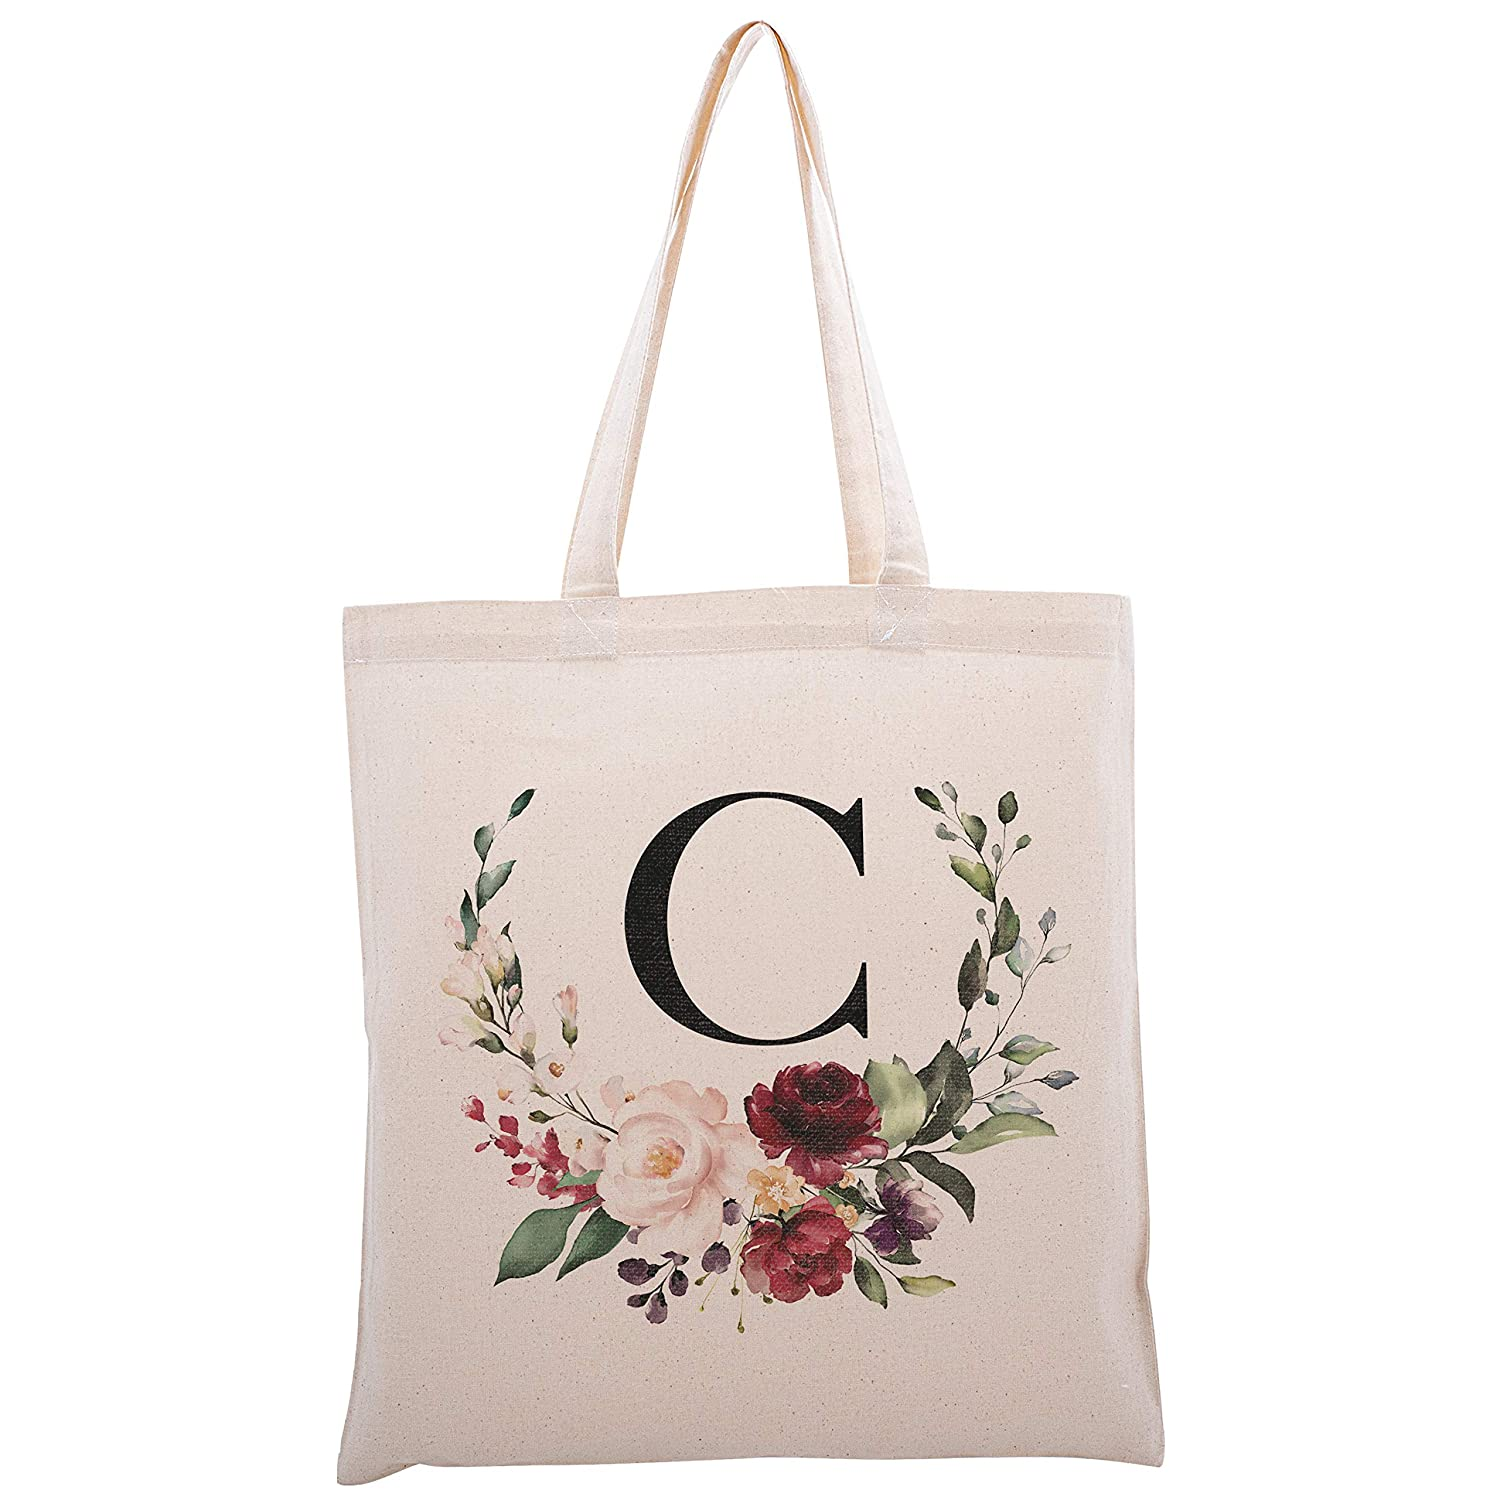 Floral Initial Tote Bag Event Bachelorette Party Baby Shower Bridesmaid Dsgn 2